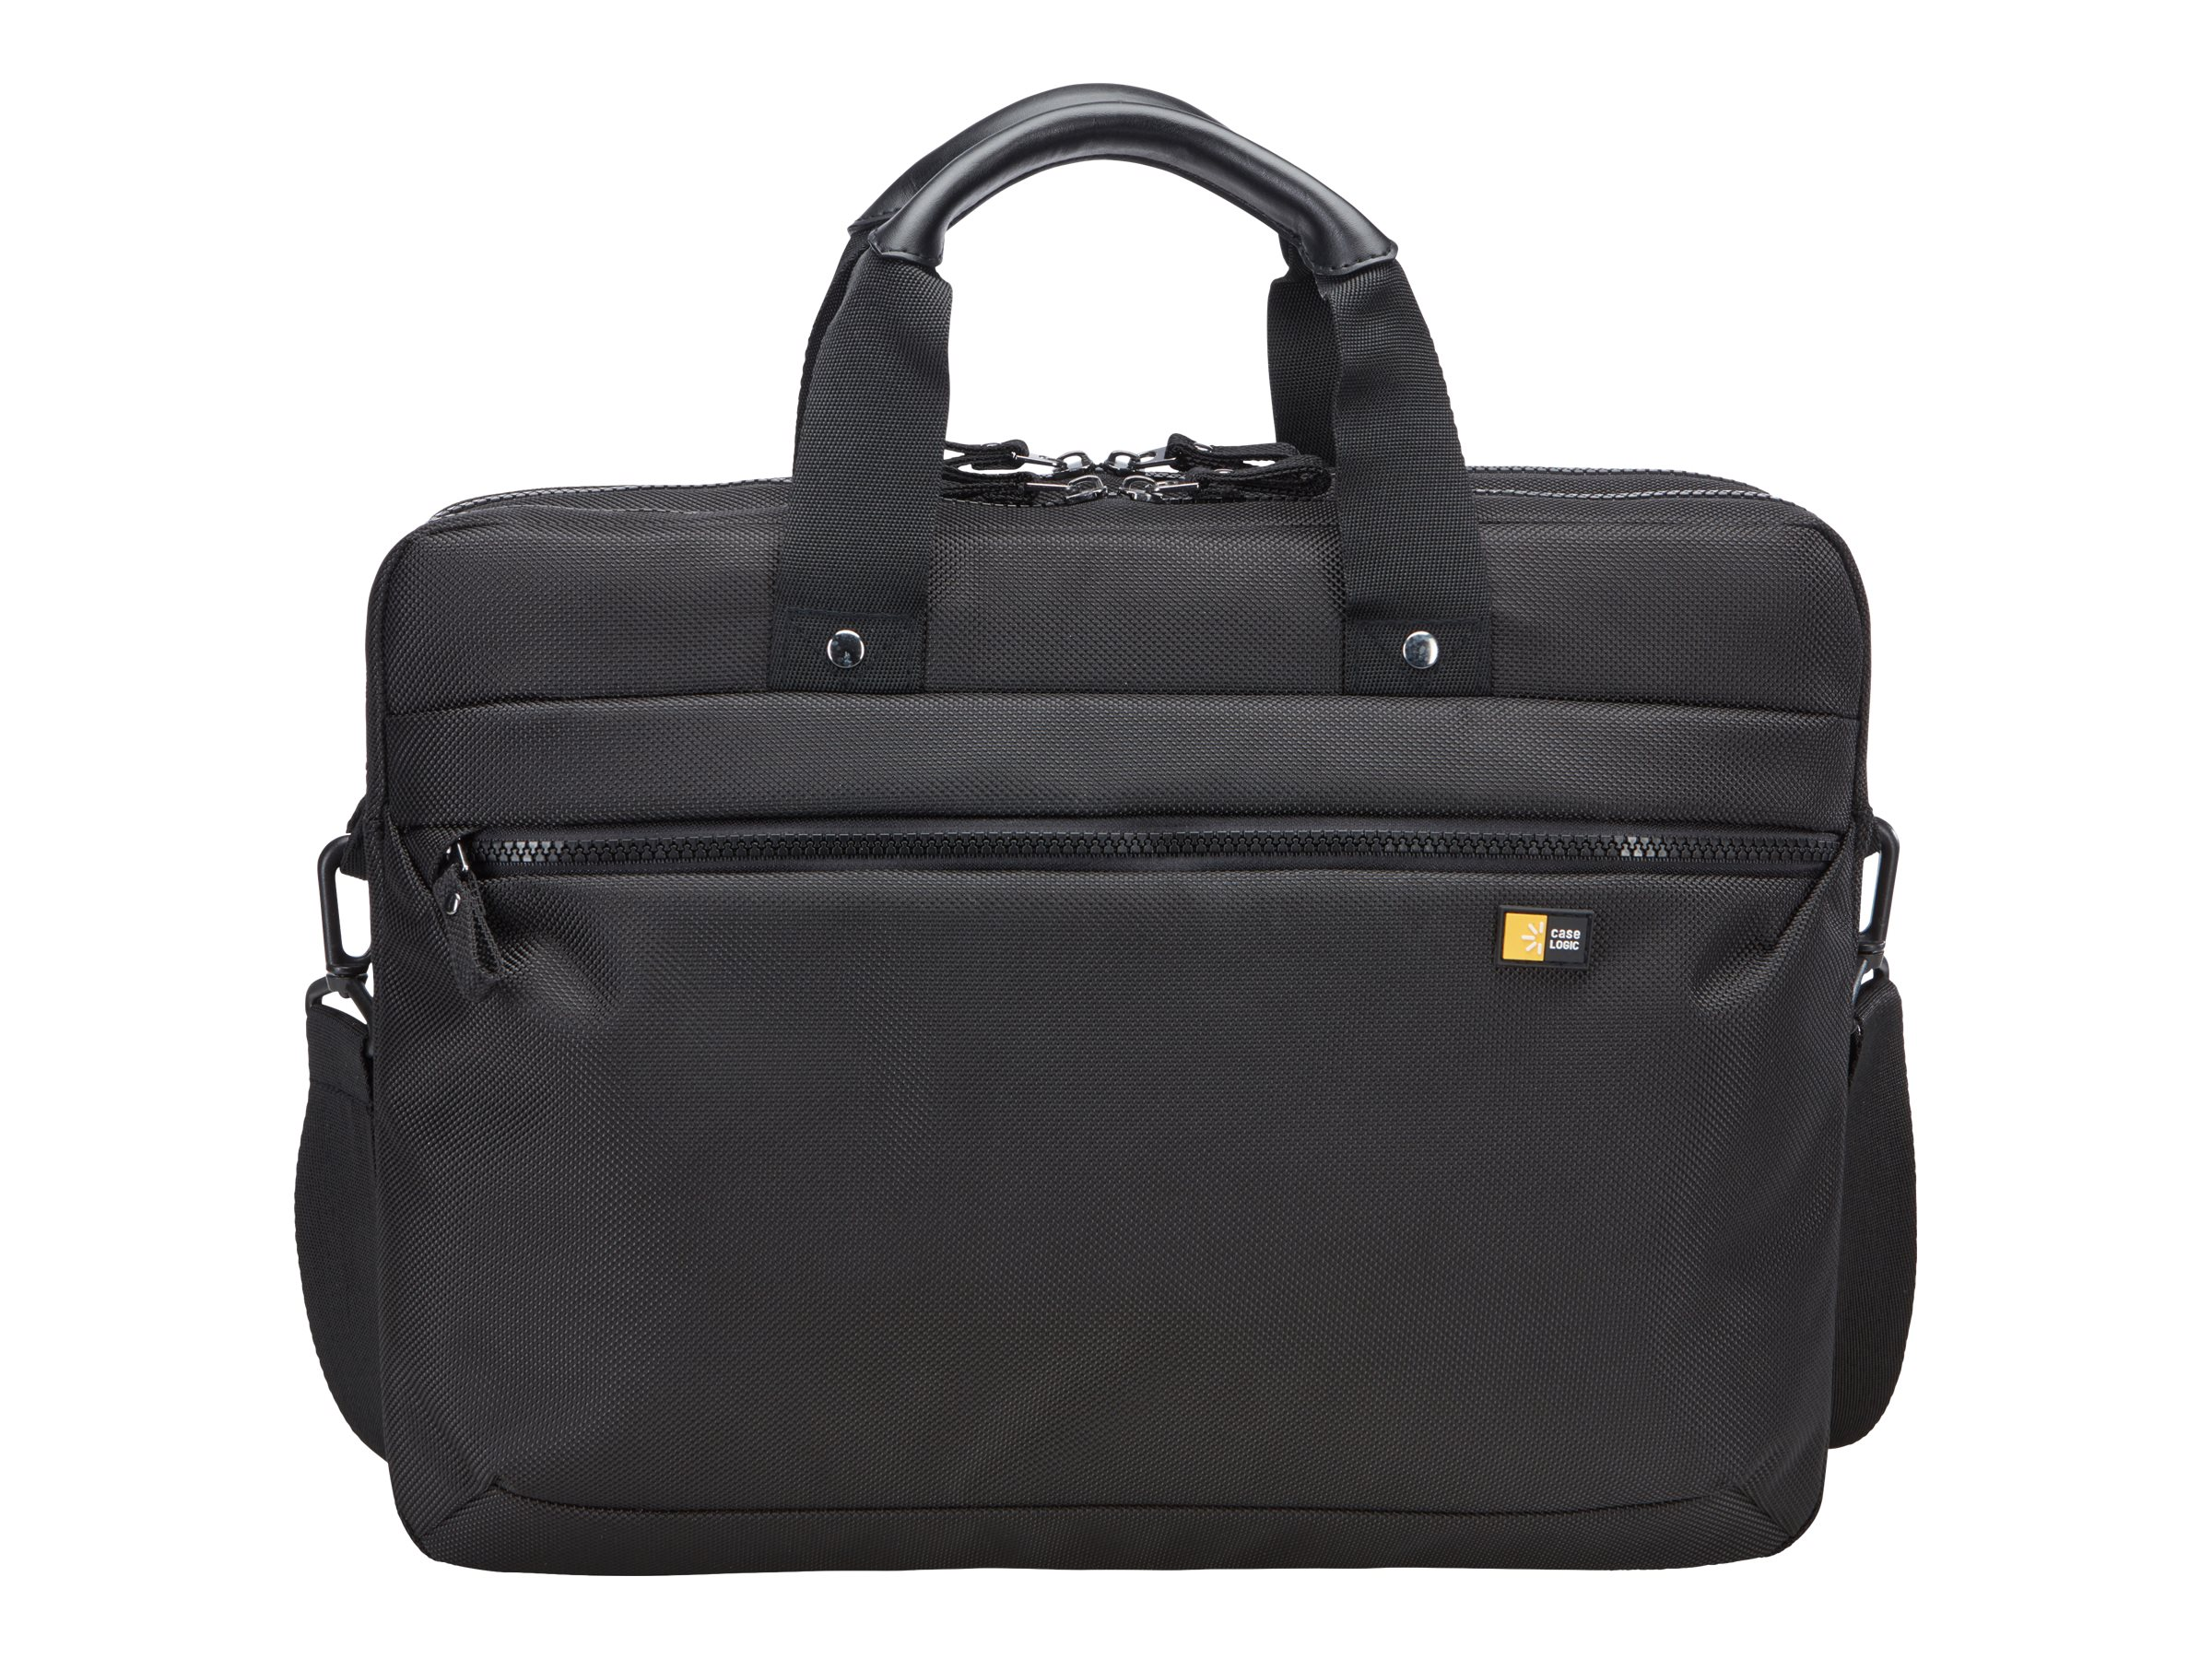 Case Logic Bryker 15.6 Laptop Bag, Black